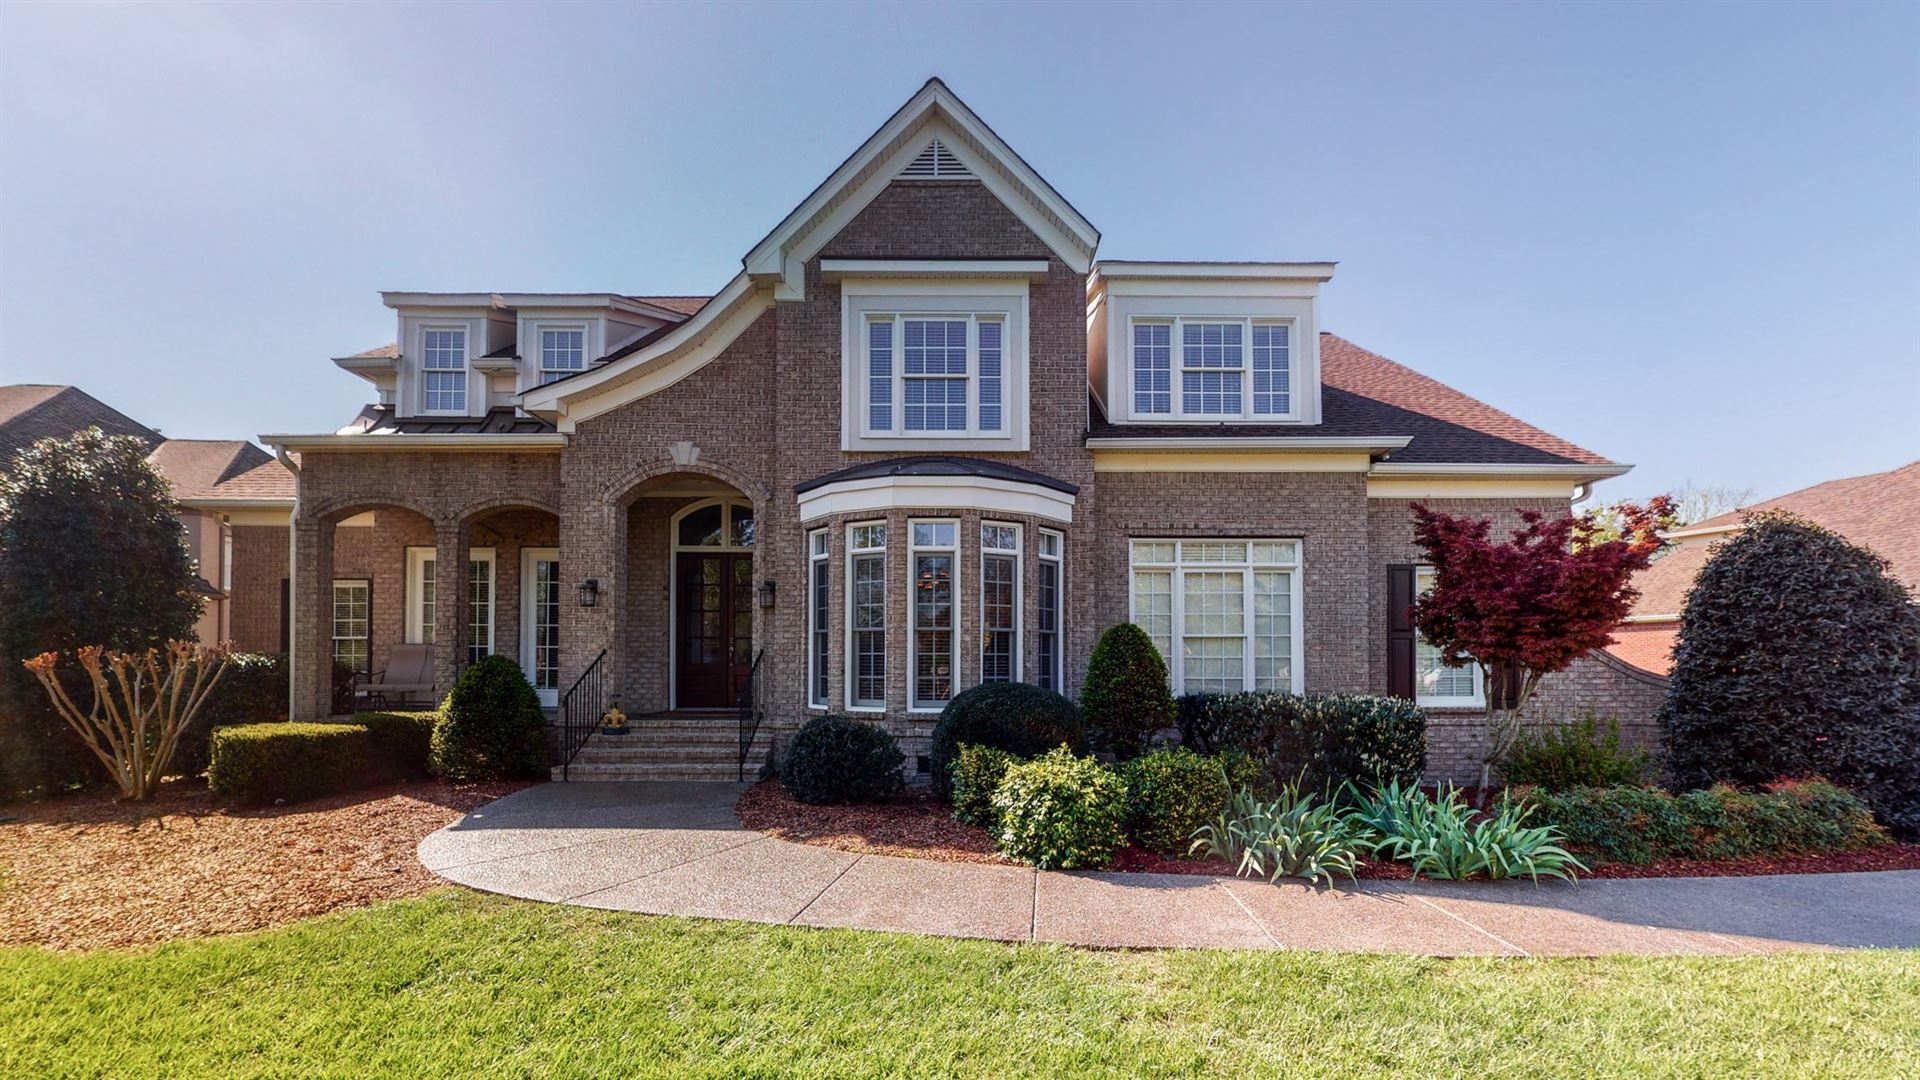 Photo of 1728 Surrey Dr, Brentwood, TN 37027 (MLS # 2243533)